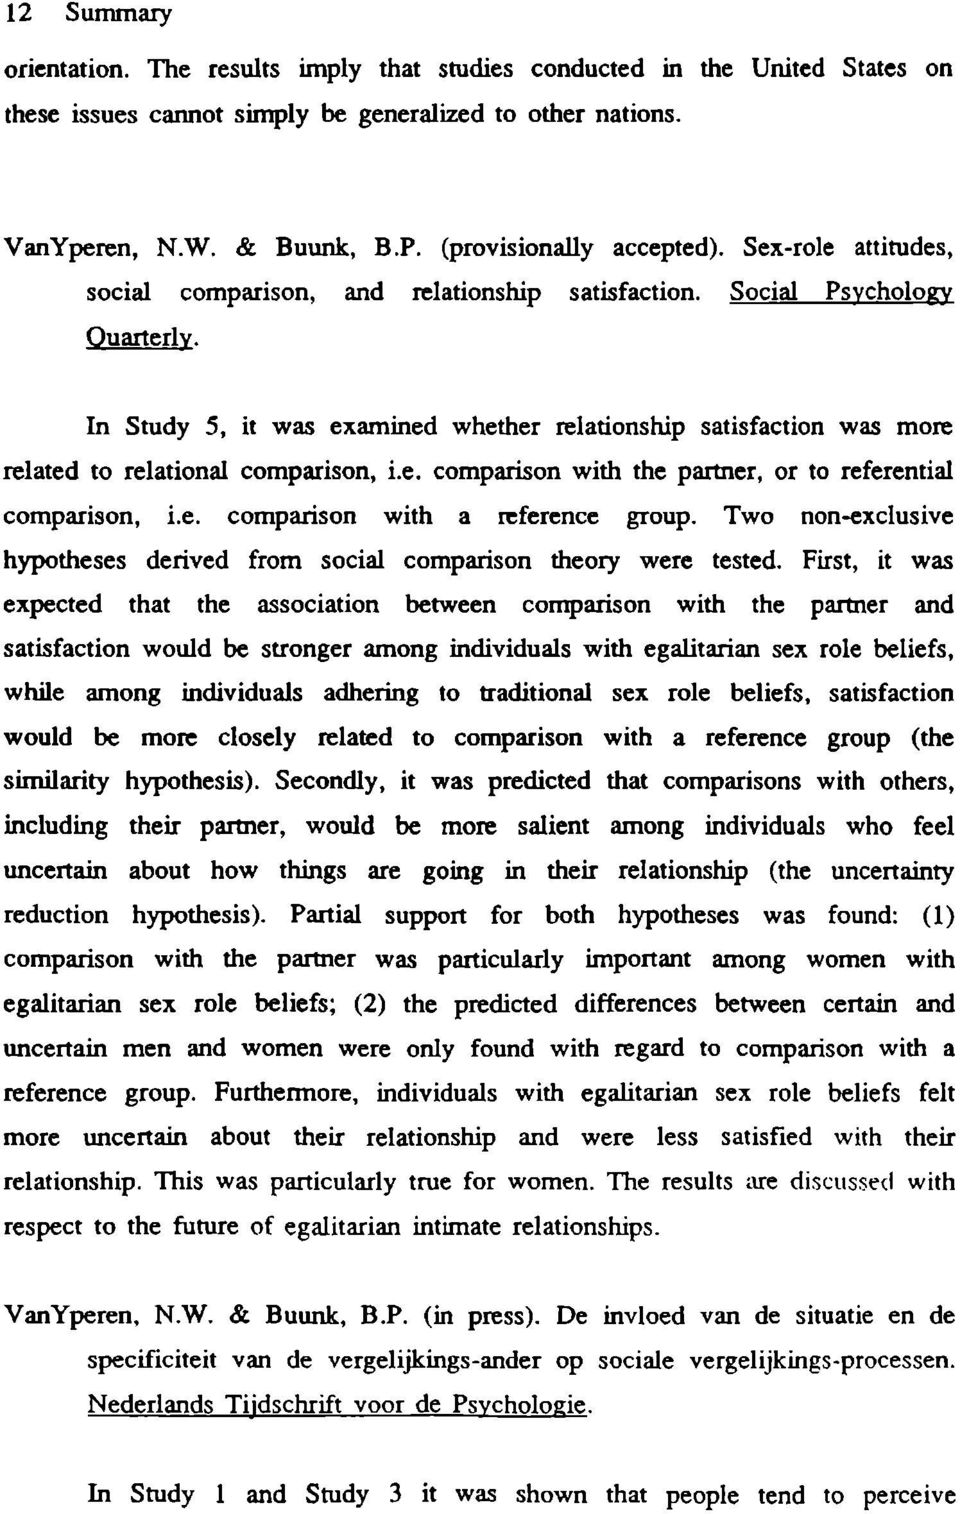 In Study 5, it was examined whether relationship satisfaction was more related to relational comparison, i.e. comparison with the partner, or to referential comparison, i.e. comparison with a reference group.